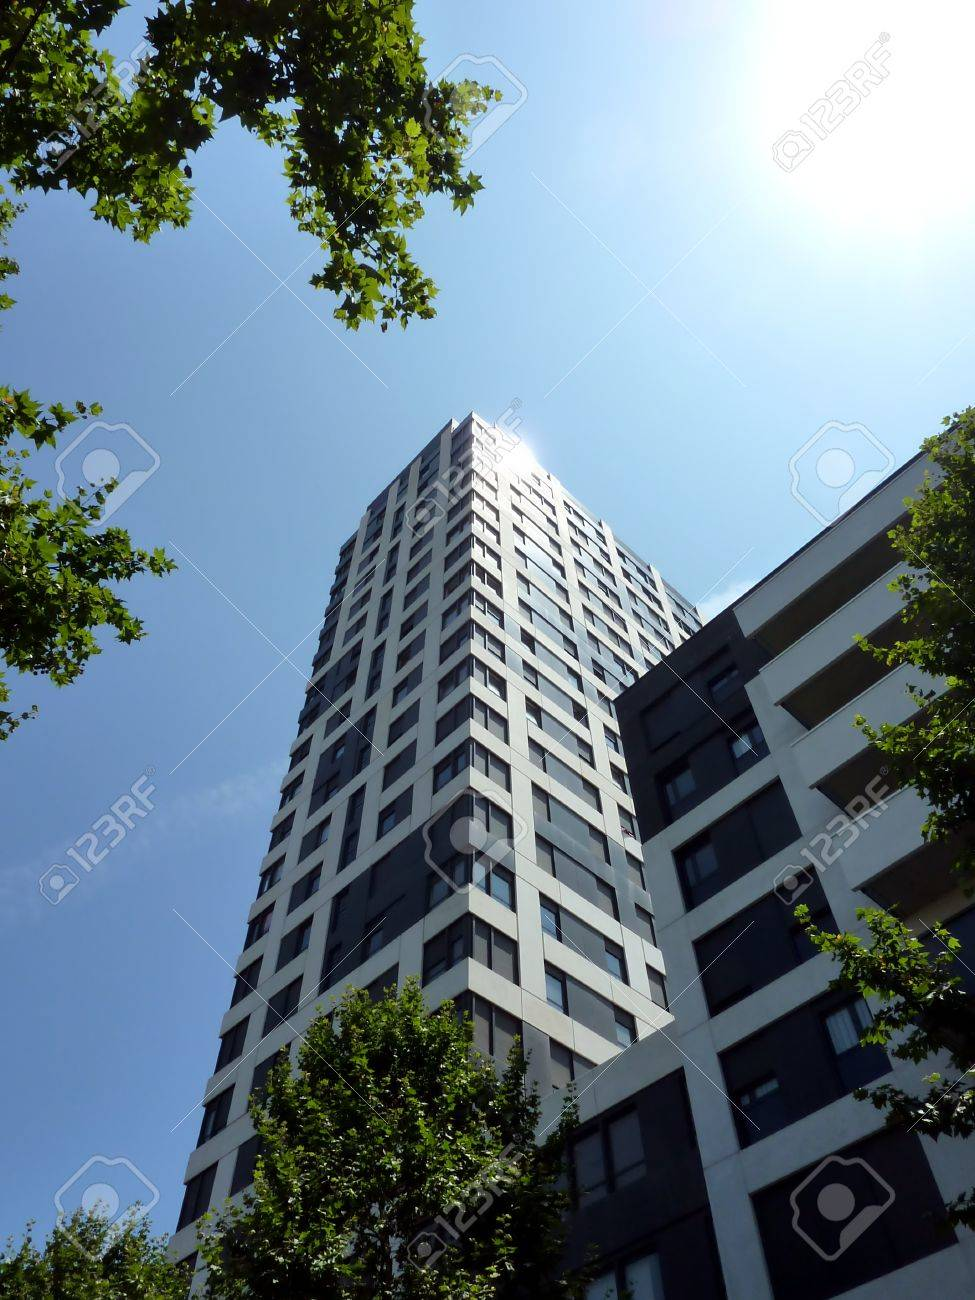 Black and white skyscraper surrounded by trees by beautiful sunny weather Stock Photo - 7593102